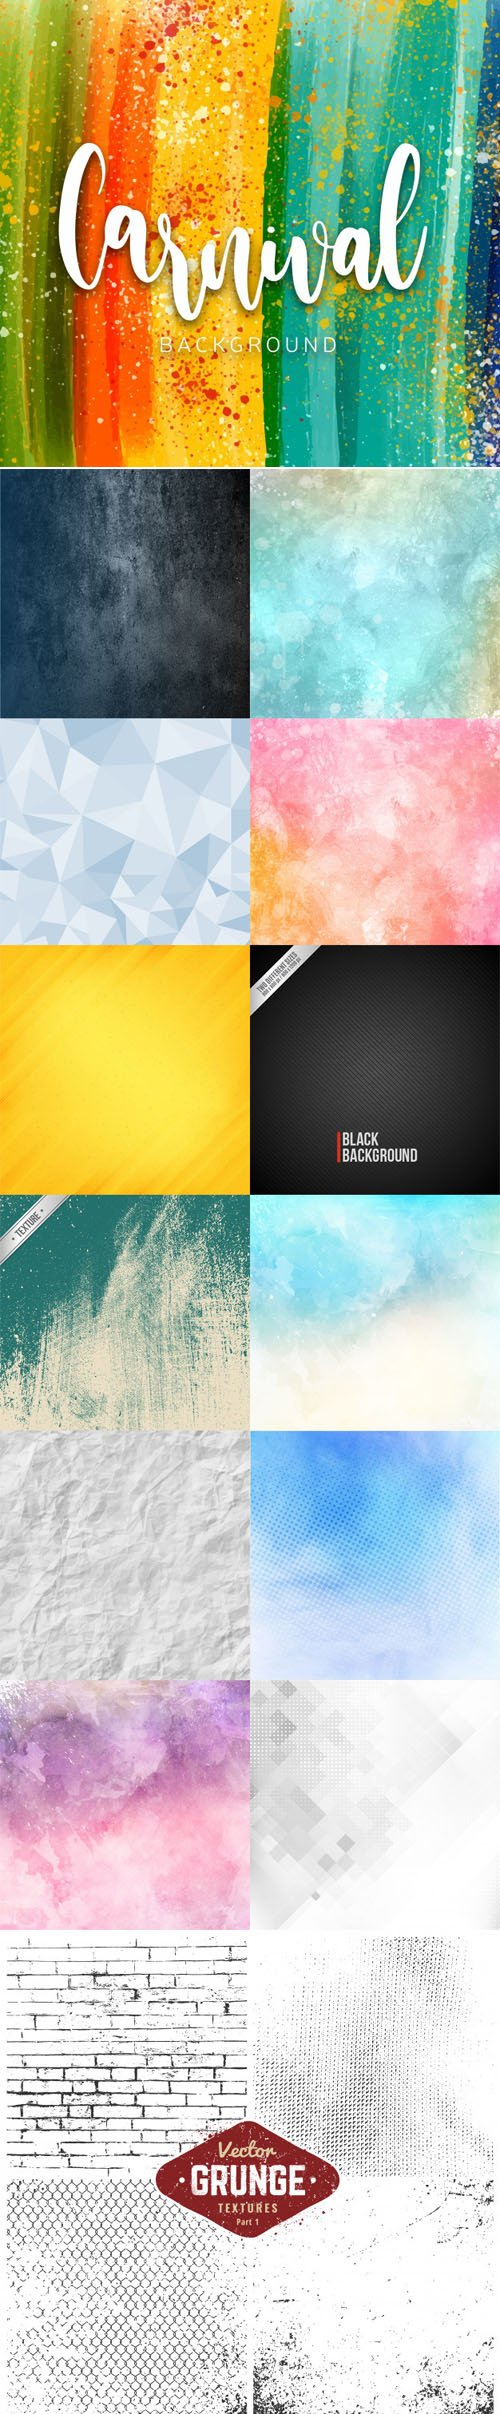 14 Textures Backgrounds Vector